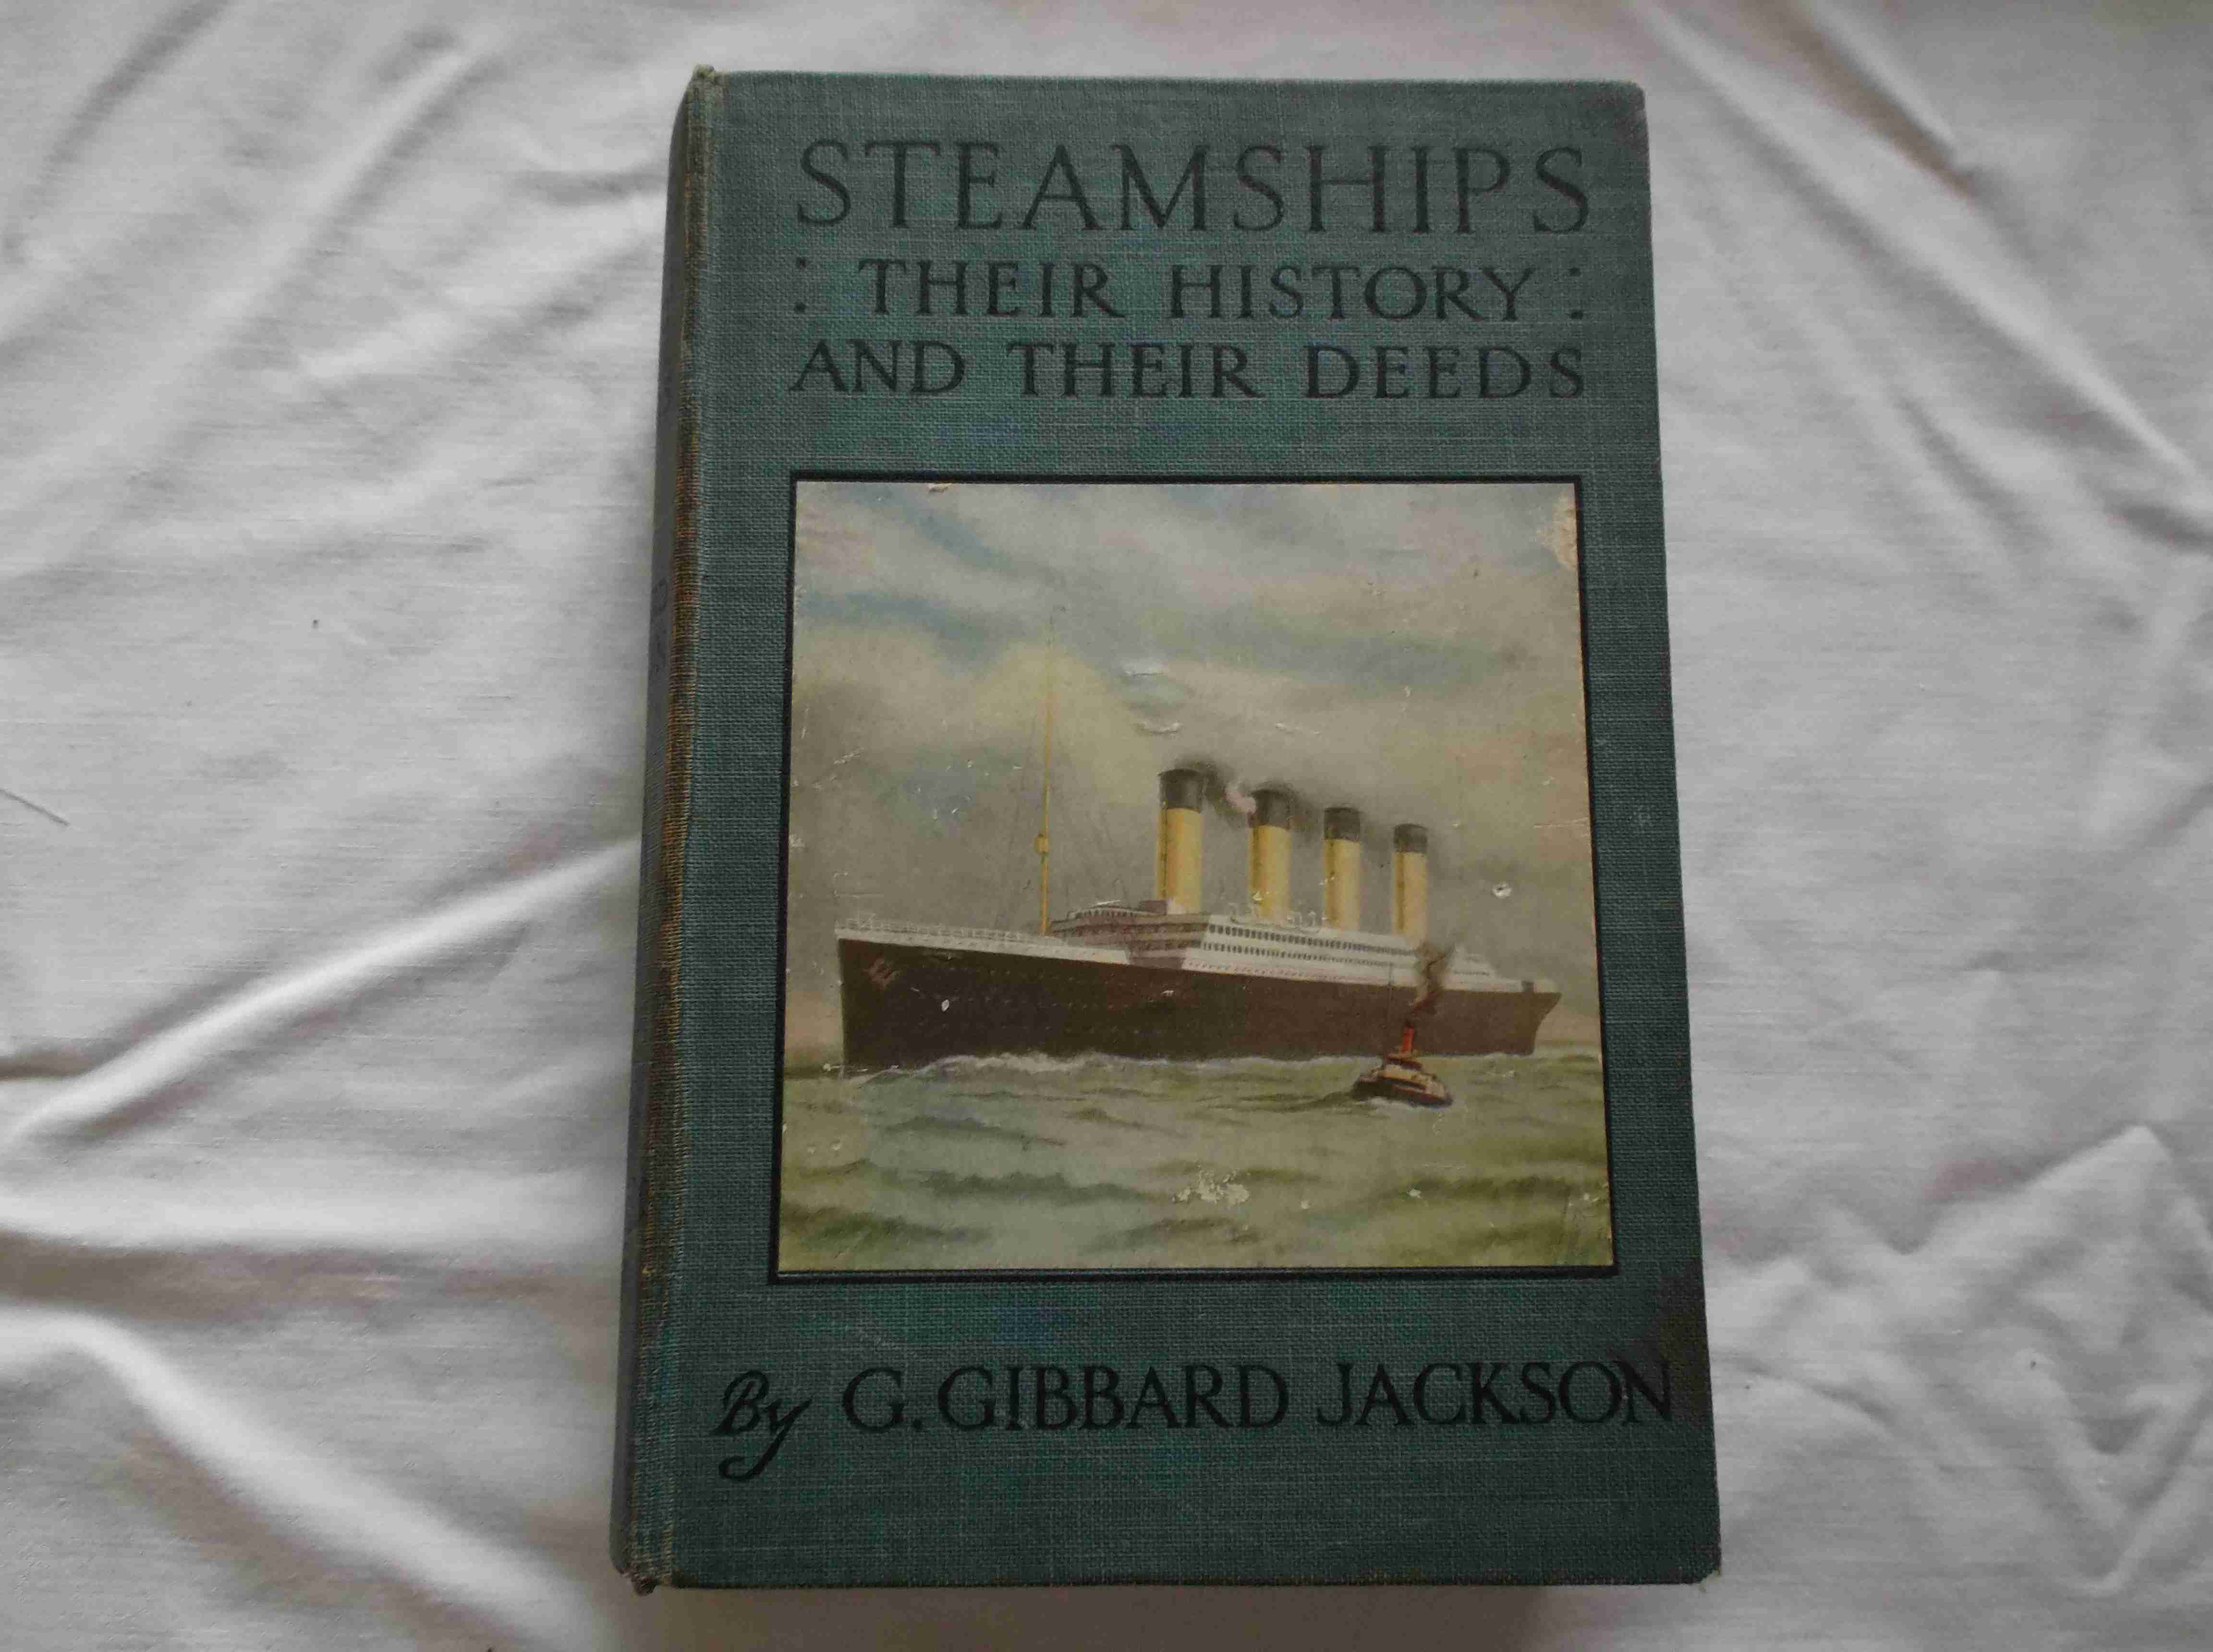 FABULOUS OLD SHIPPING BOOK ENTITLED 'STEAMSHIPS' BY G. GIBBARD JACKSON